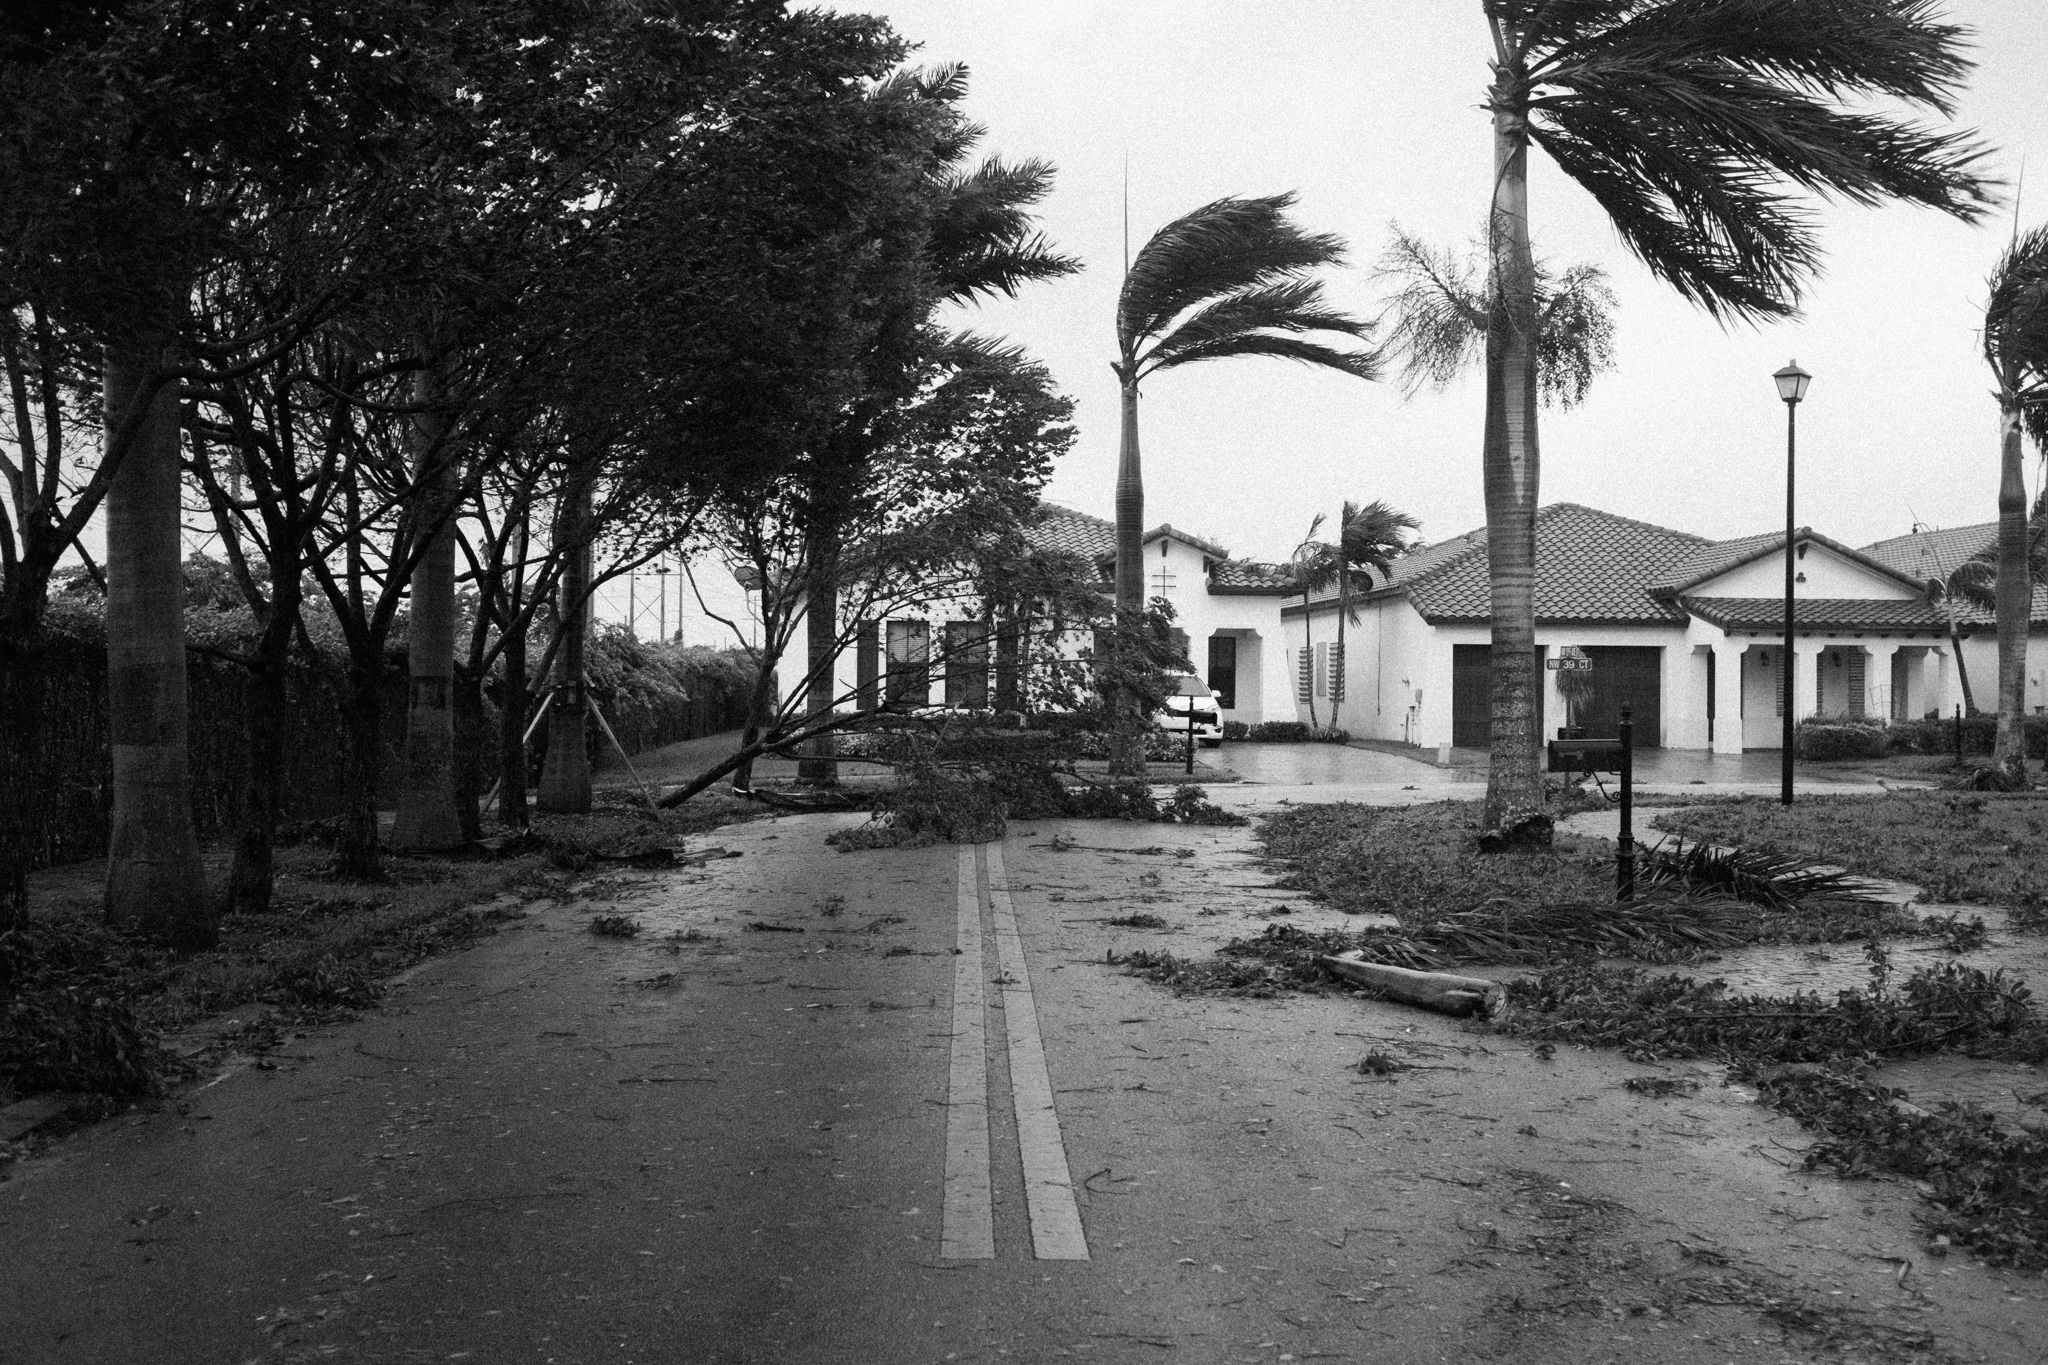 Ari Dorfman Documentary Photography Hurricane Irma-0002.jpg